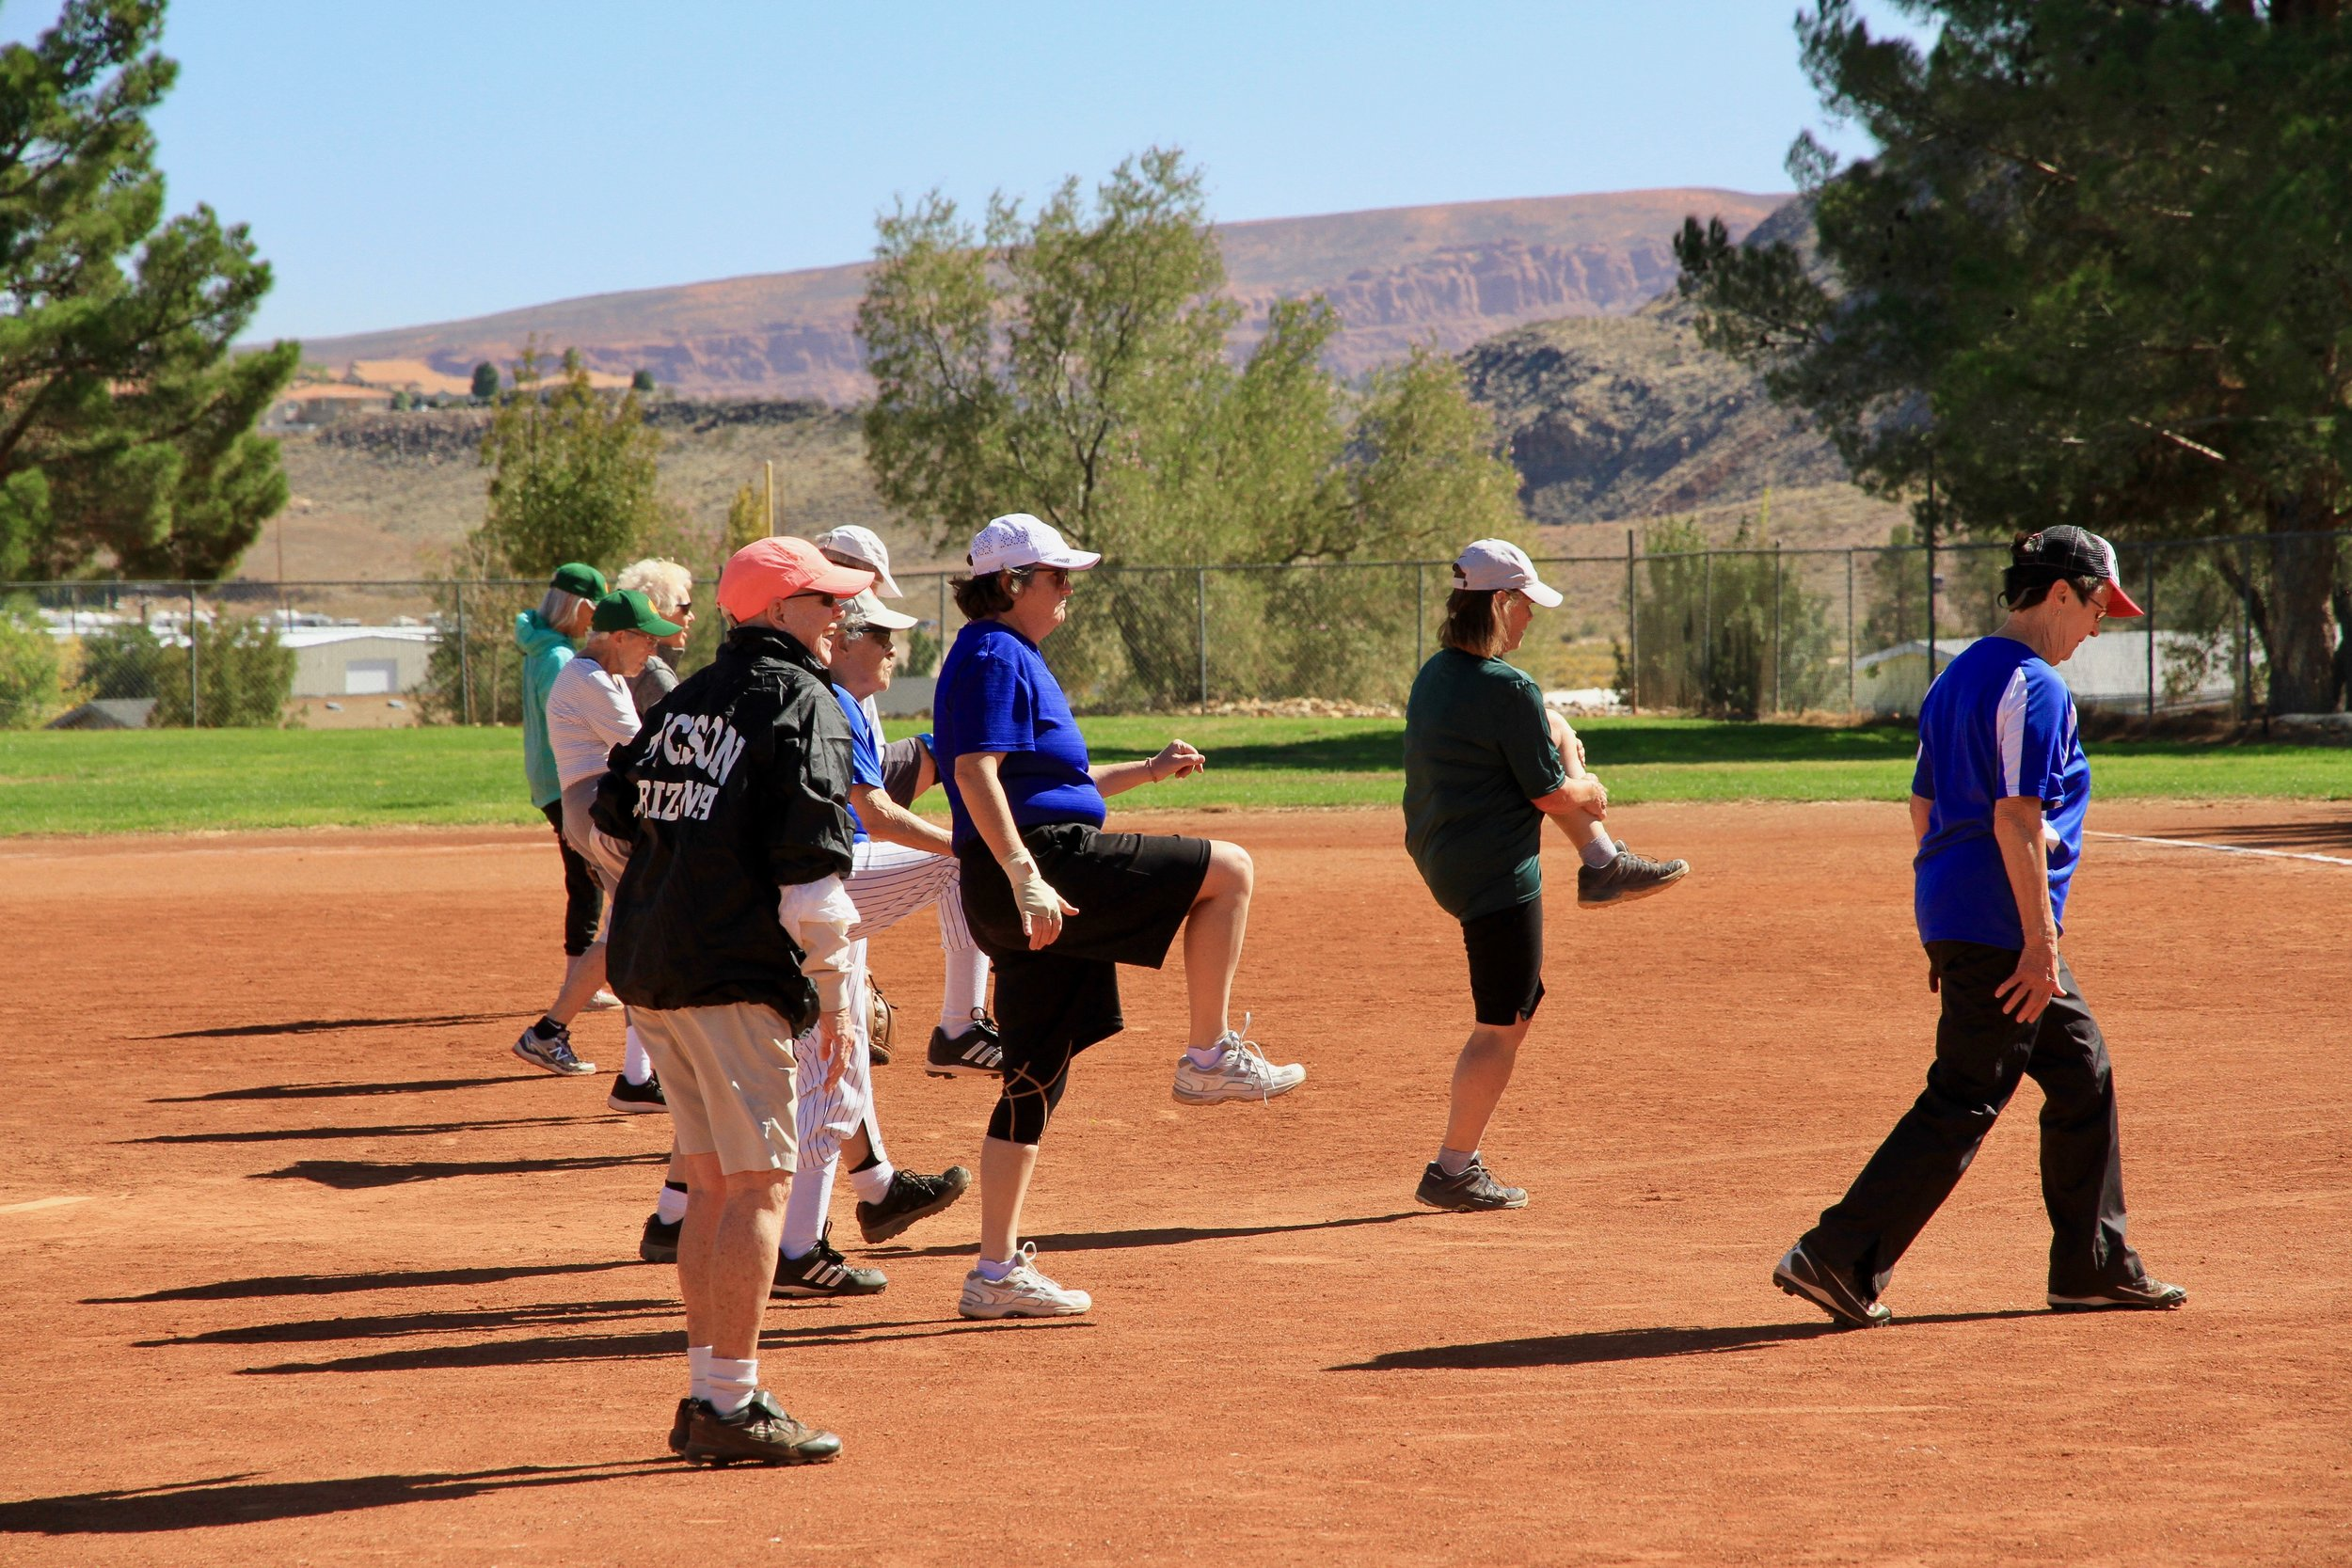 "THEN AND NOW - The Colorado Peaches began in 1991 and today, fortified by excellent coaching and a willingness to ""step up to the plate"", has over 25 members/players ages 50 to 88 years young.We maintain a culture in which everyone is valued and welcome, regardless of age, ability, creed, ethnicity, and sexual orientation."